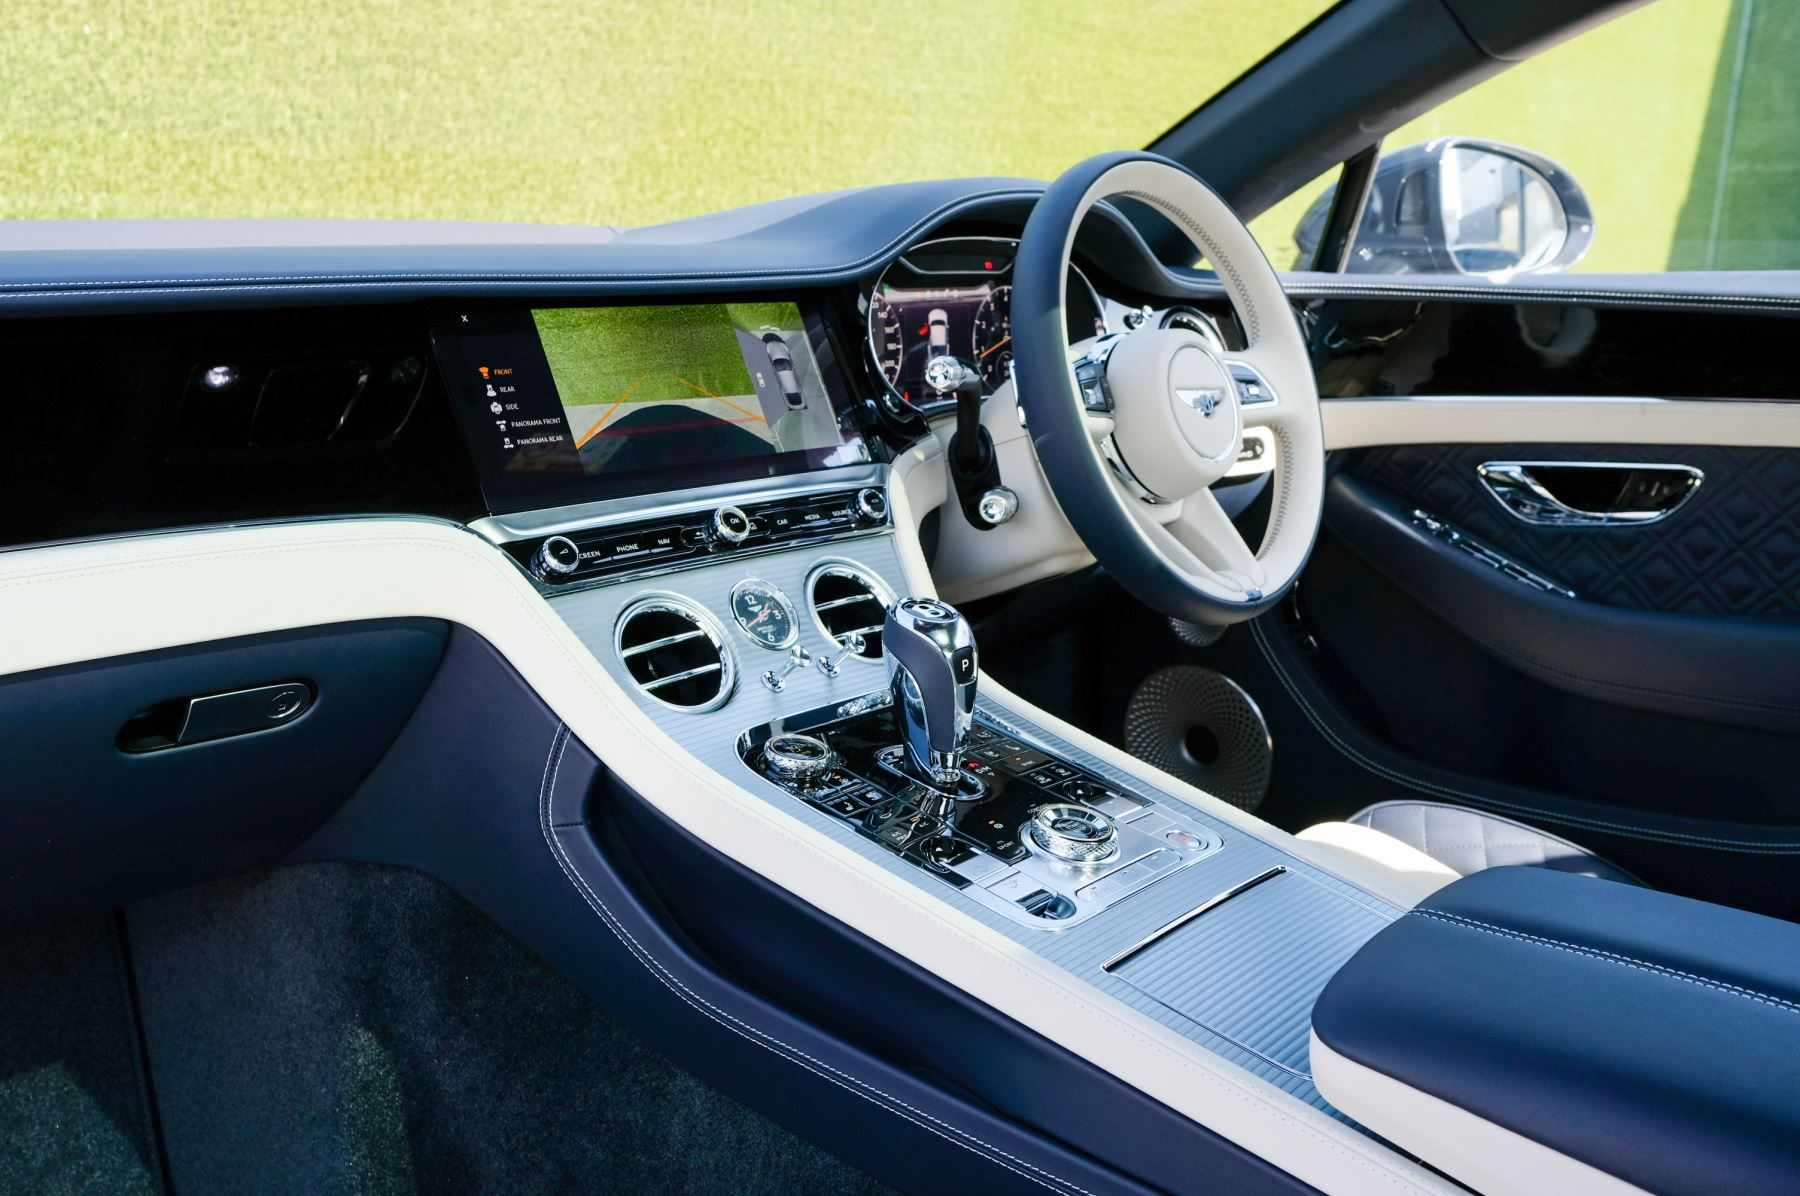 Bentley Continental GT 4.0 V8 Mulliner Edition 2dr Auto - City Specification - Panoramic Glass Roof image 11